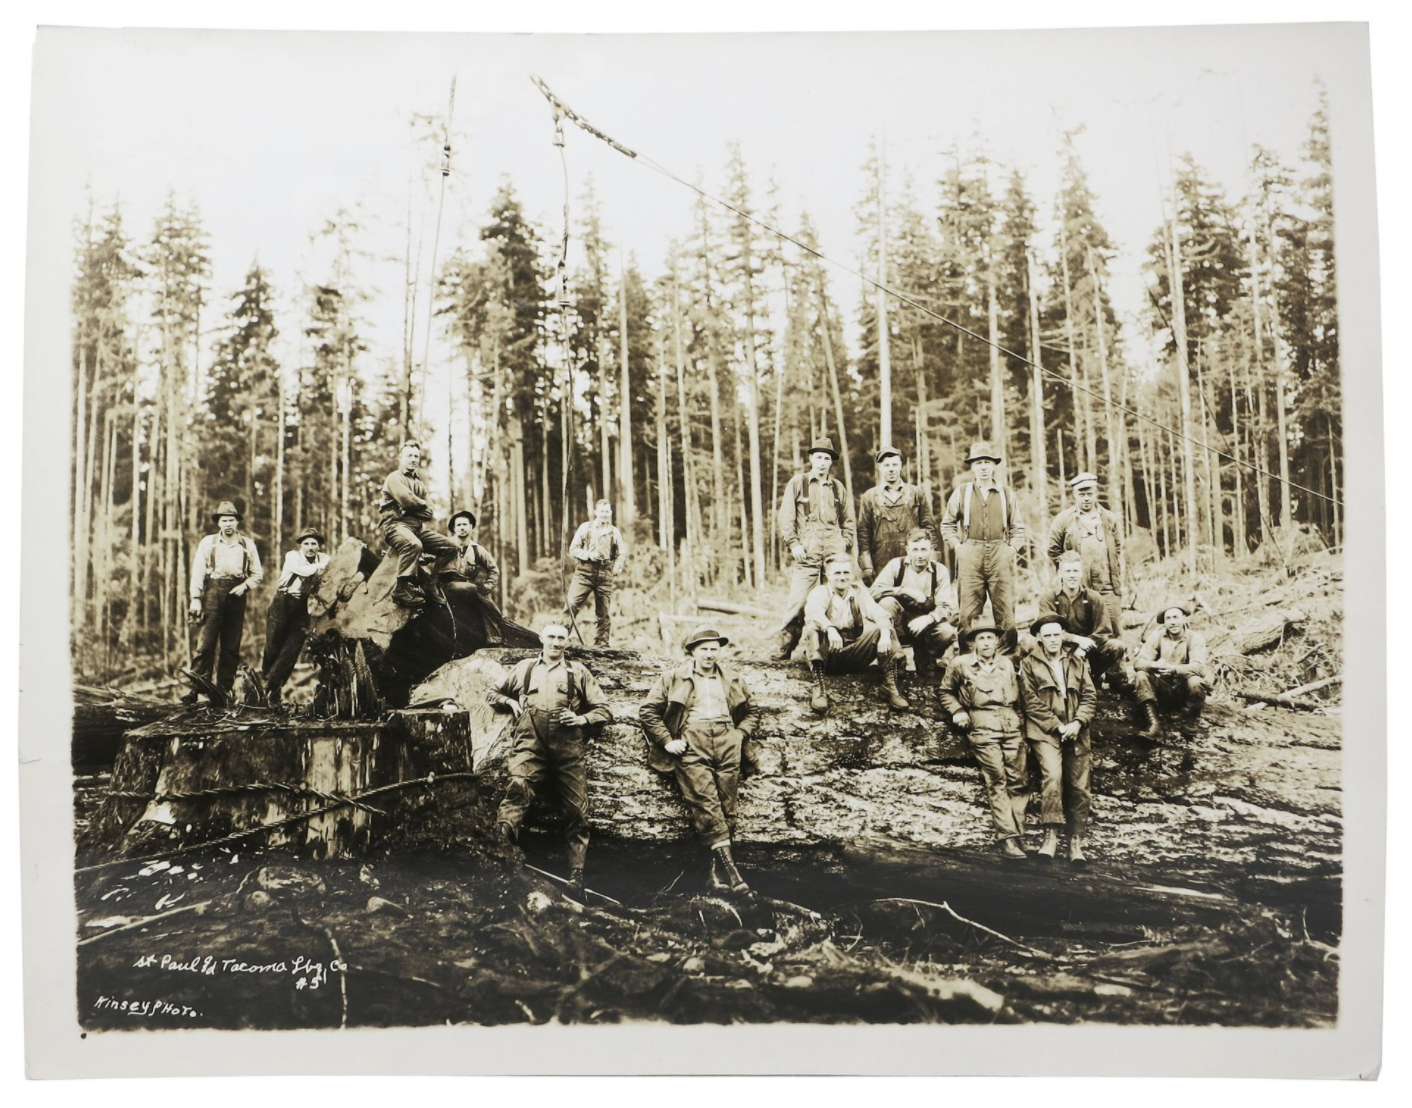 This cache of nine large photographs dates back to the lumbering community of the Pacific Northwest in the early 1900s. Check it out here.